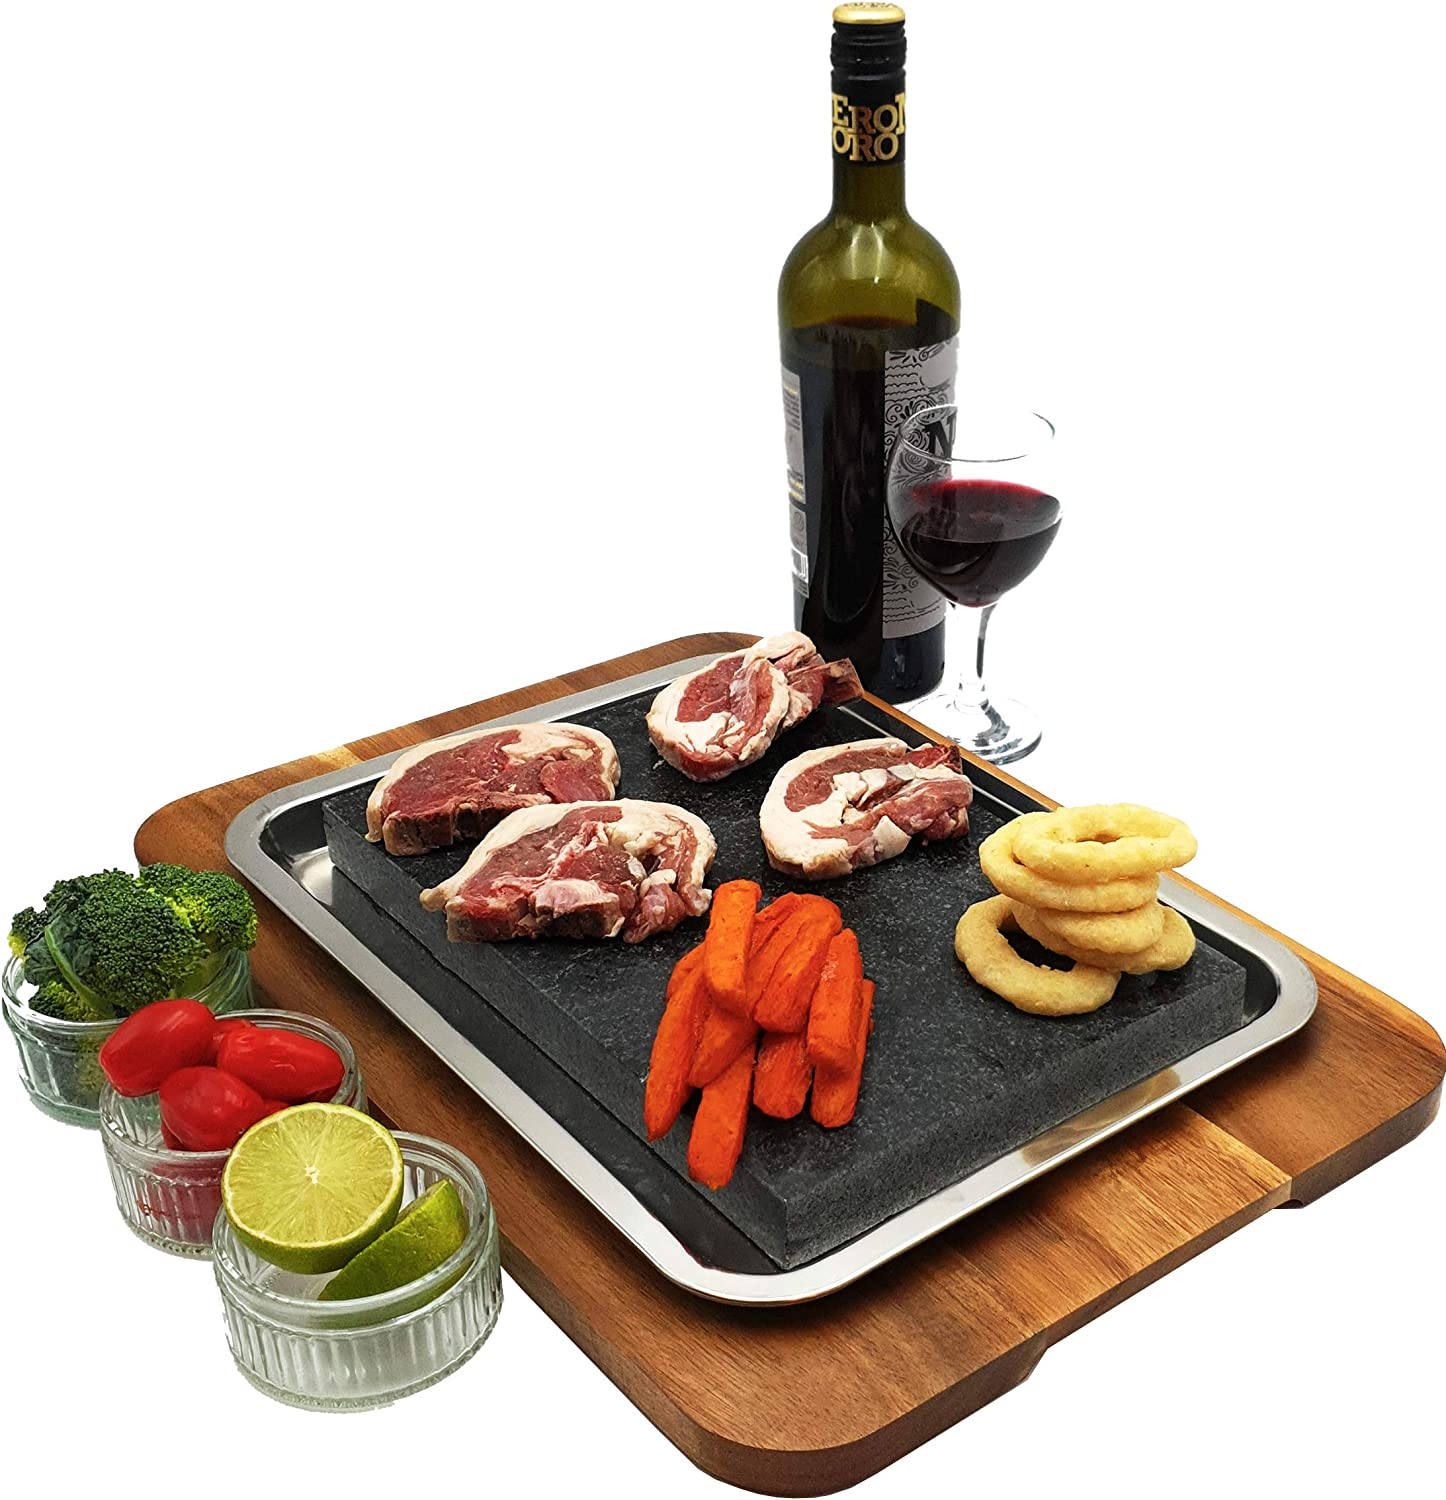 Extra Large Steak Stone Set. Premium Granite Lava Stone, Stainless Steel Juice-Catching Pan & Acacia Wood Tray. Hibachi Style Cooking at Dinner Parties Hot/Cold Dishes Meat Vegetables Fish. Gift Idea